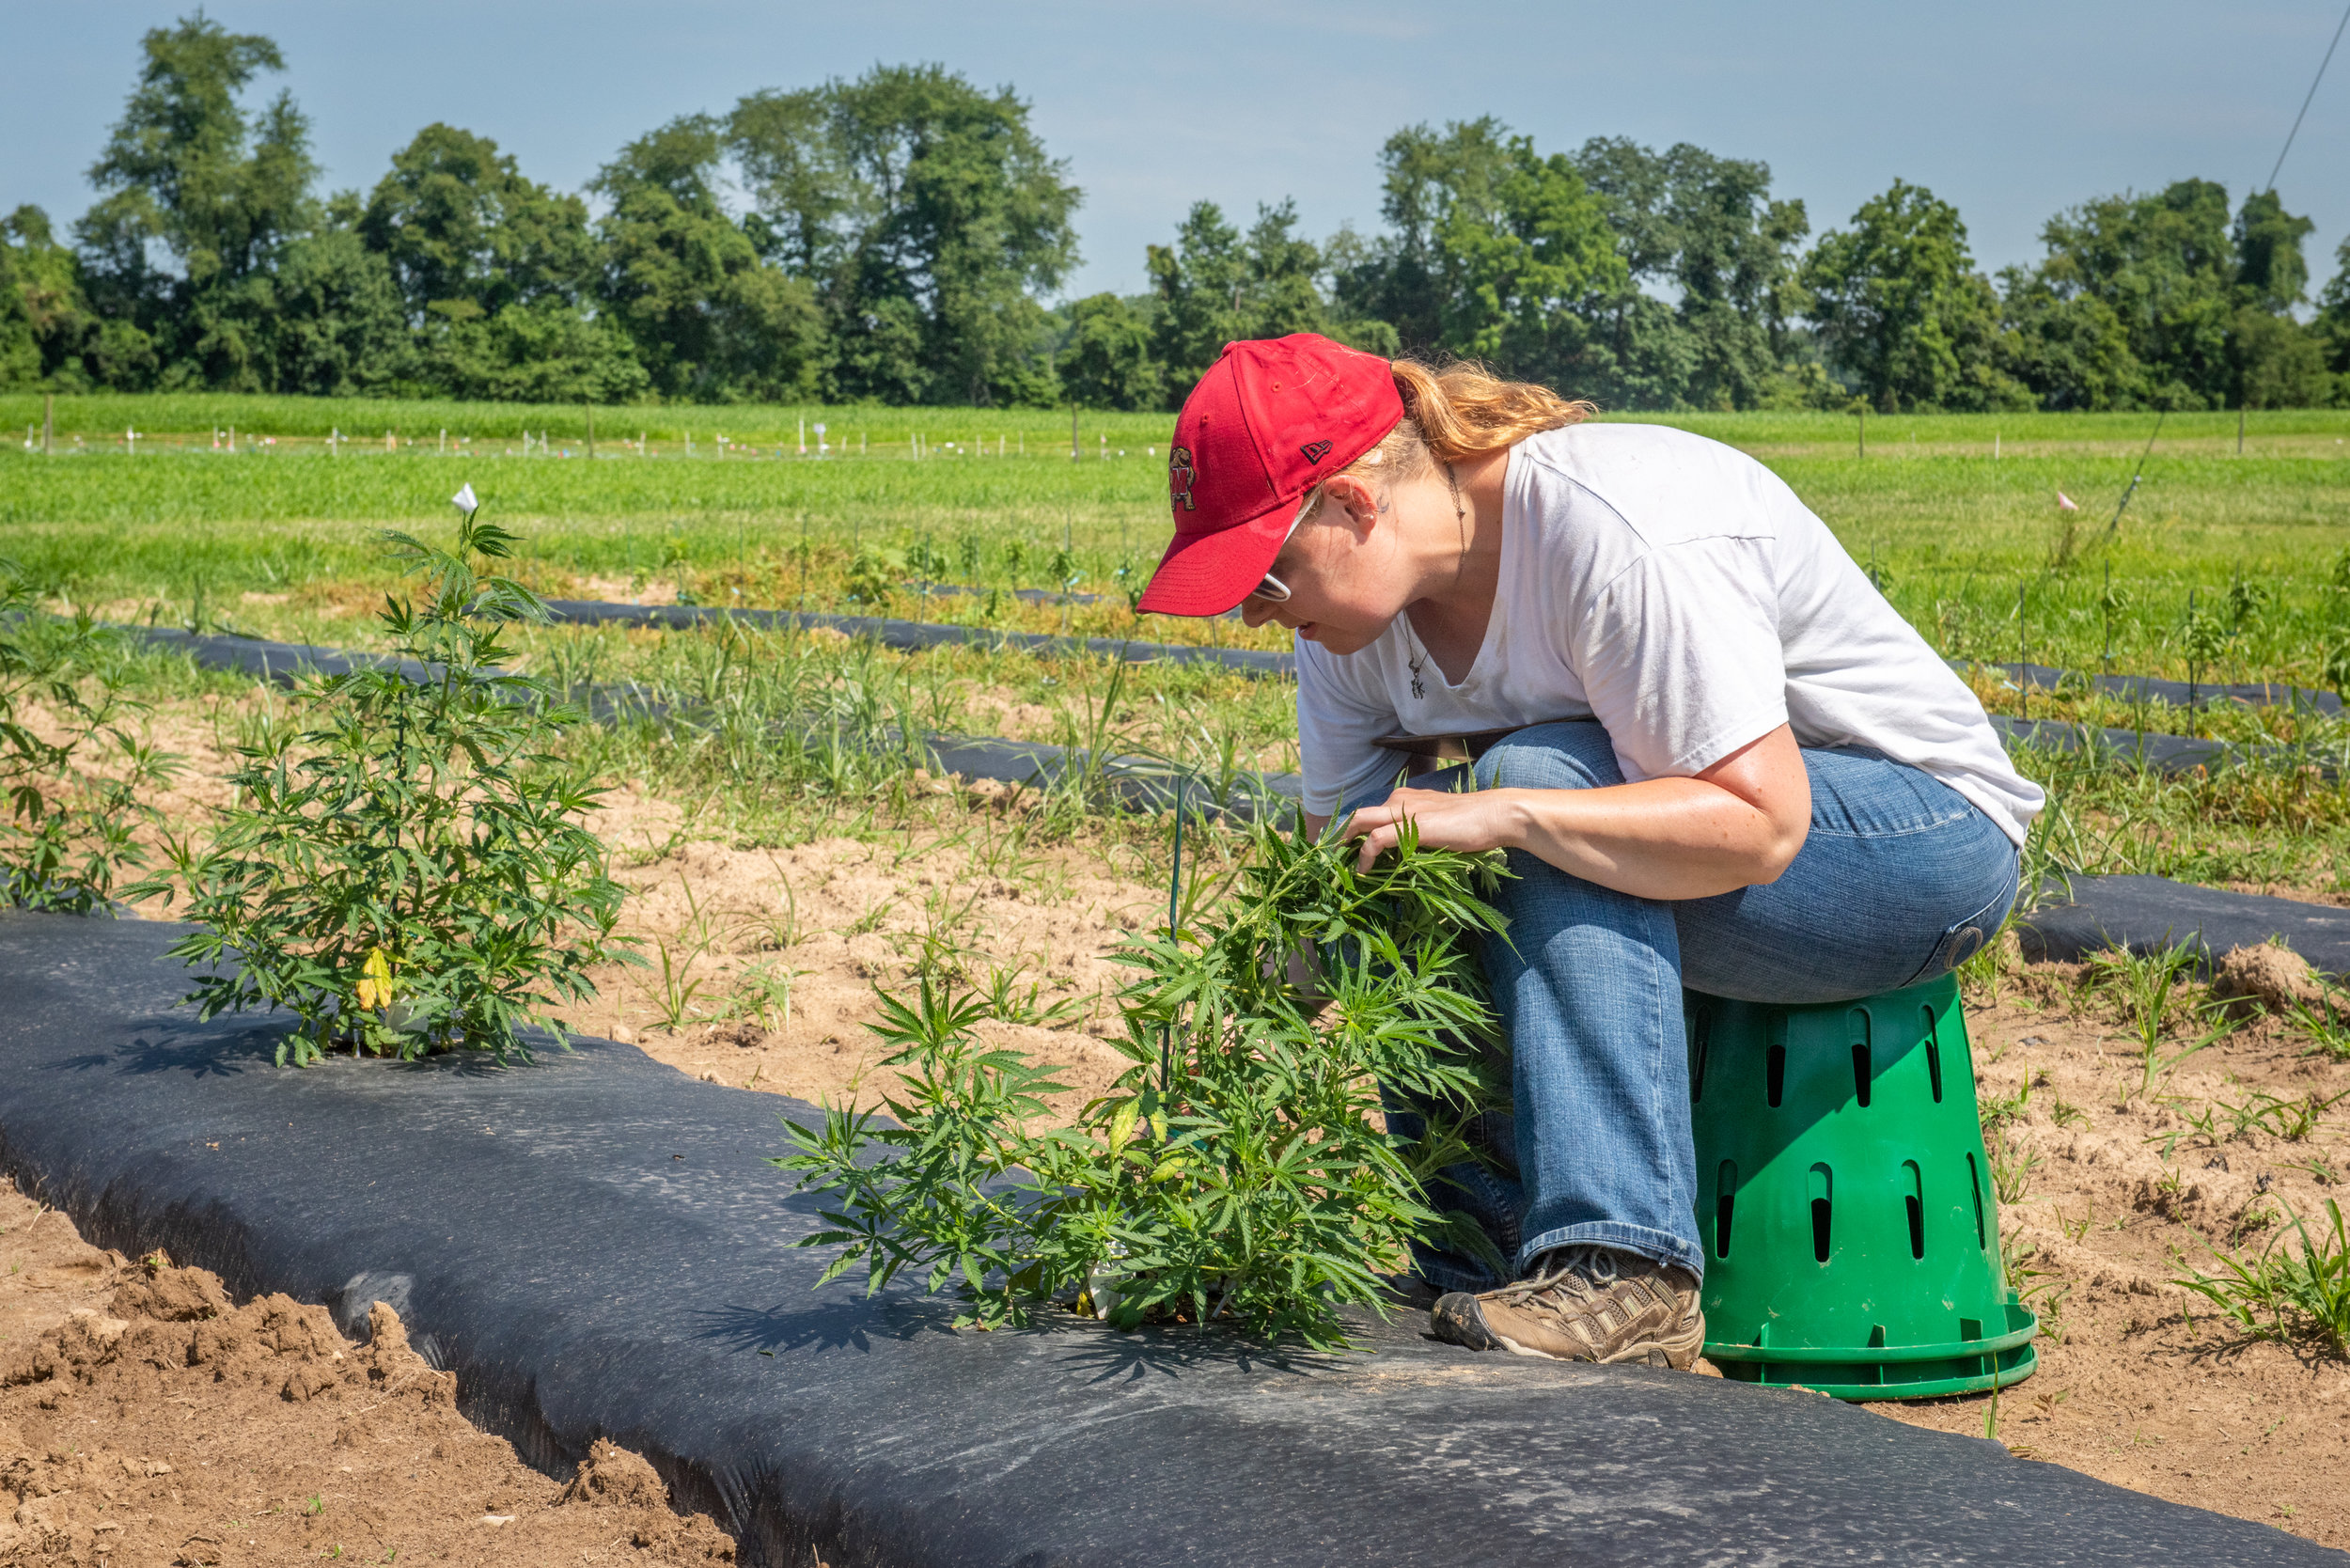 Hemp research plots at the Wye with researcher counting bugs on the plants.  Image by Edwin Remsberg.